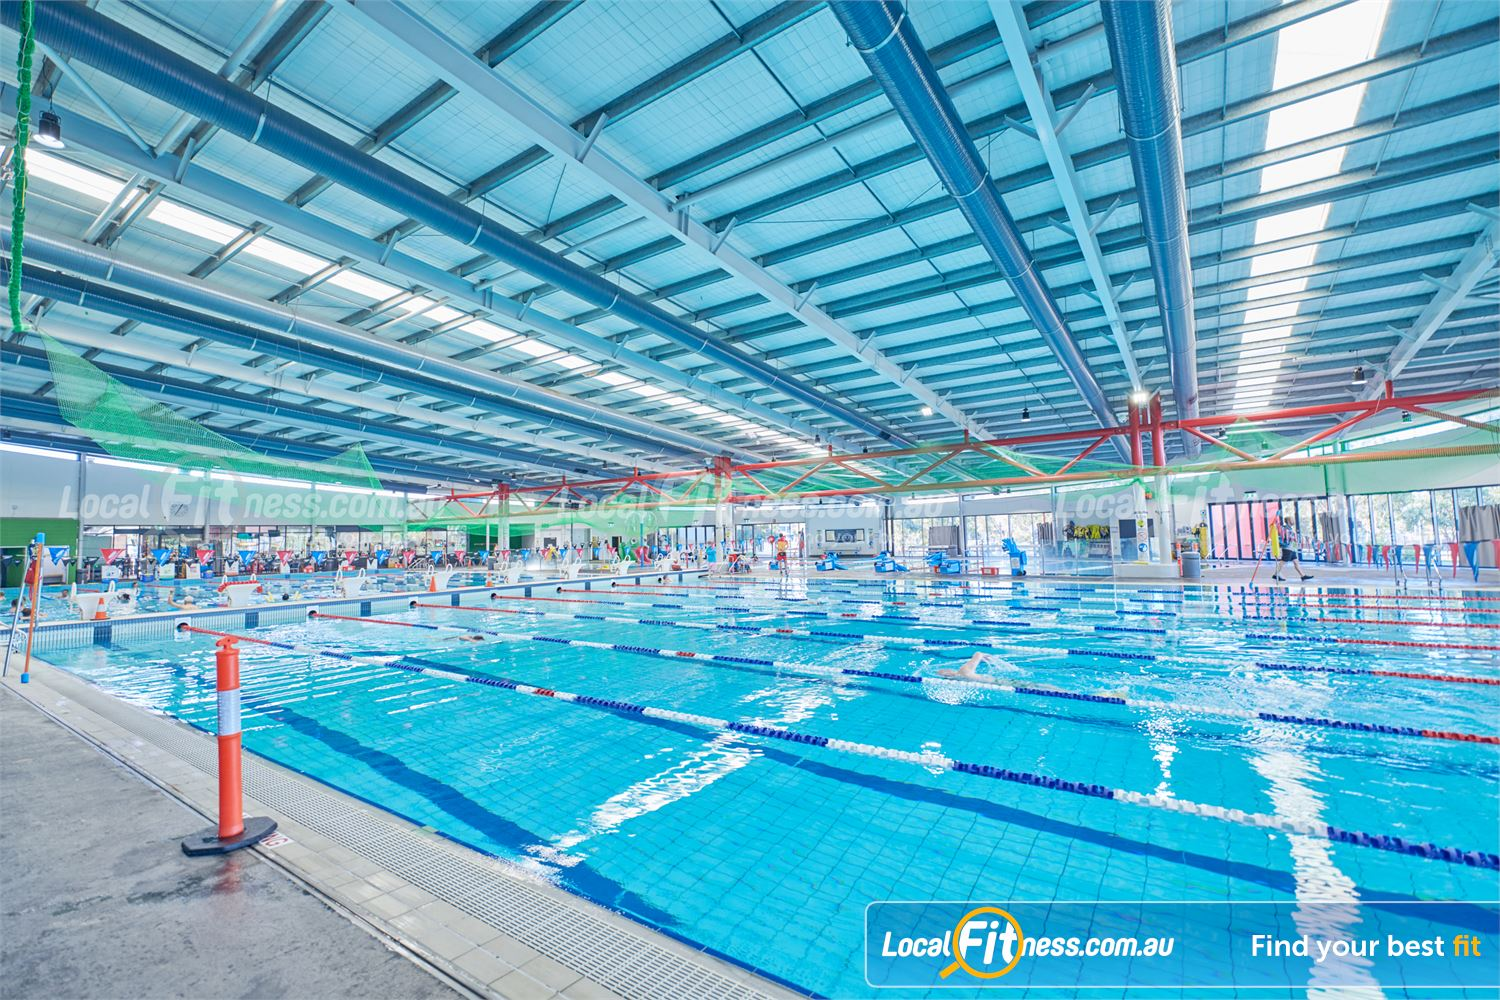 Maribyrnong Aquatic Centre Near Aberfeldie a movable pool boom divides the pool increasing from 8 to 16 lanes.